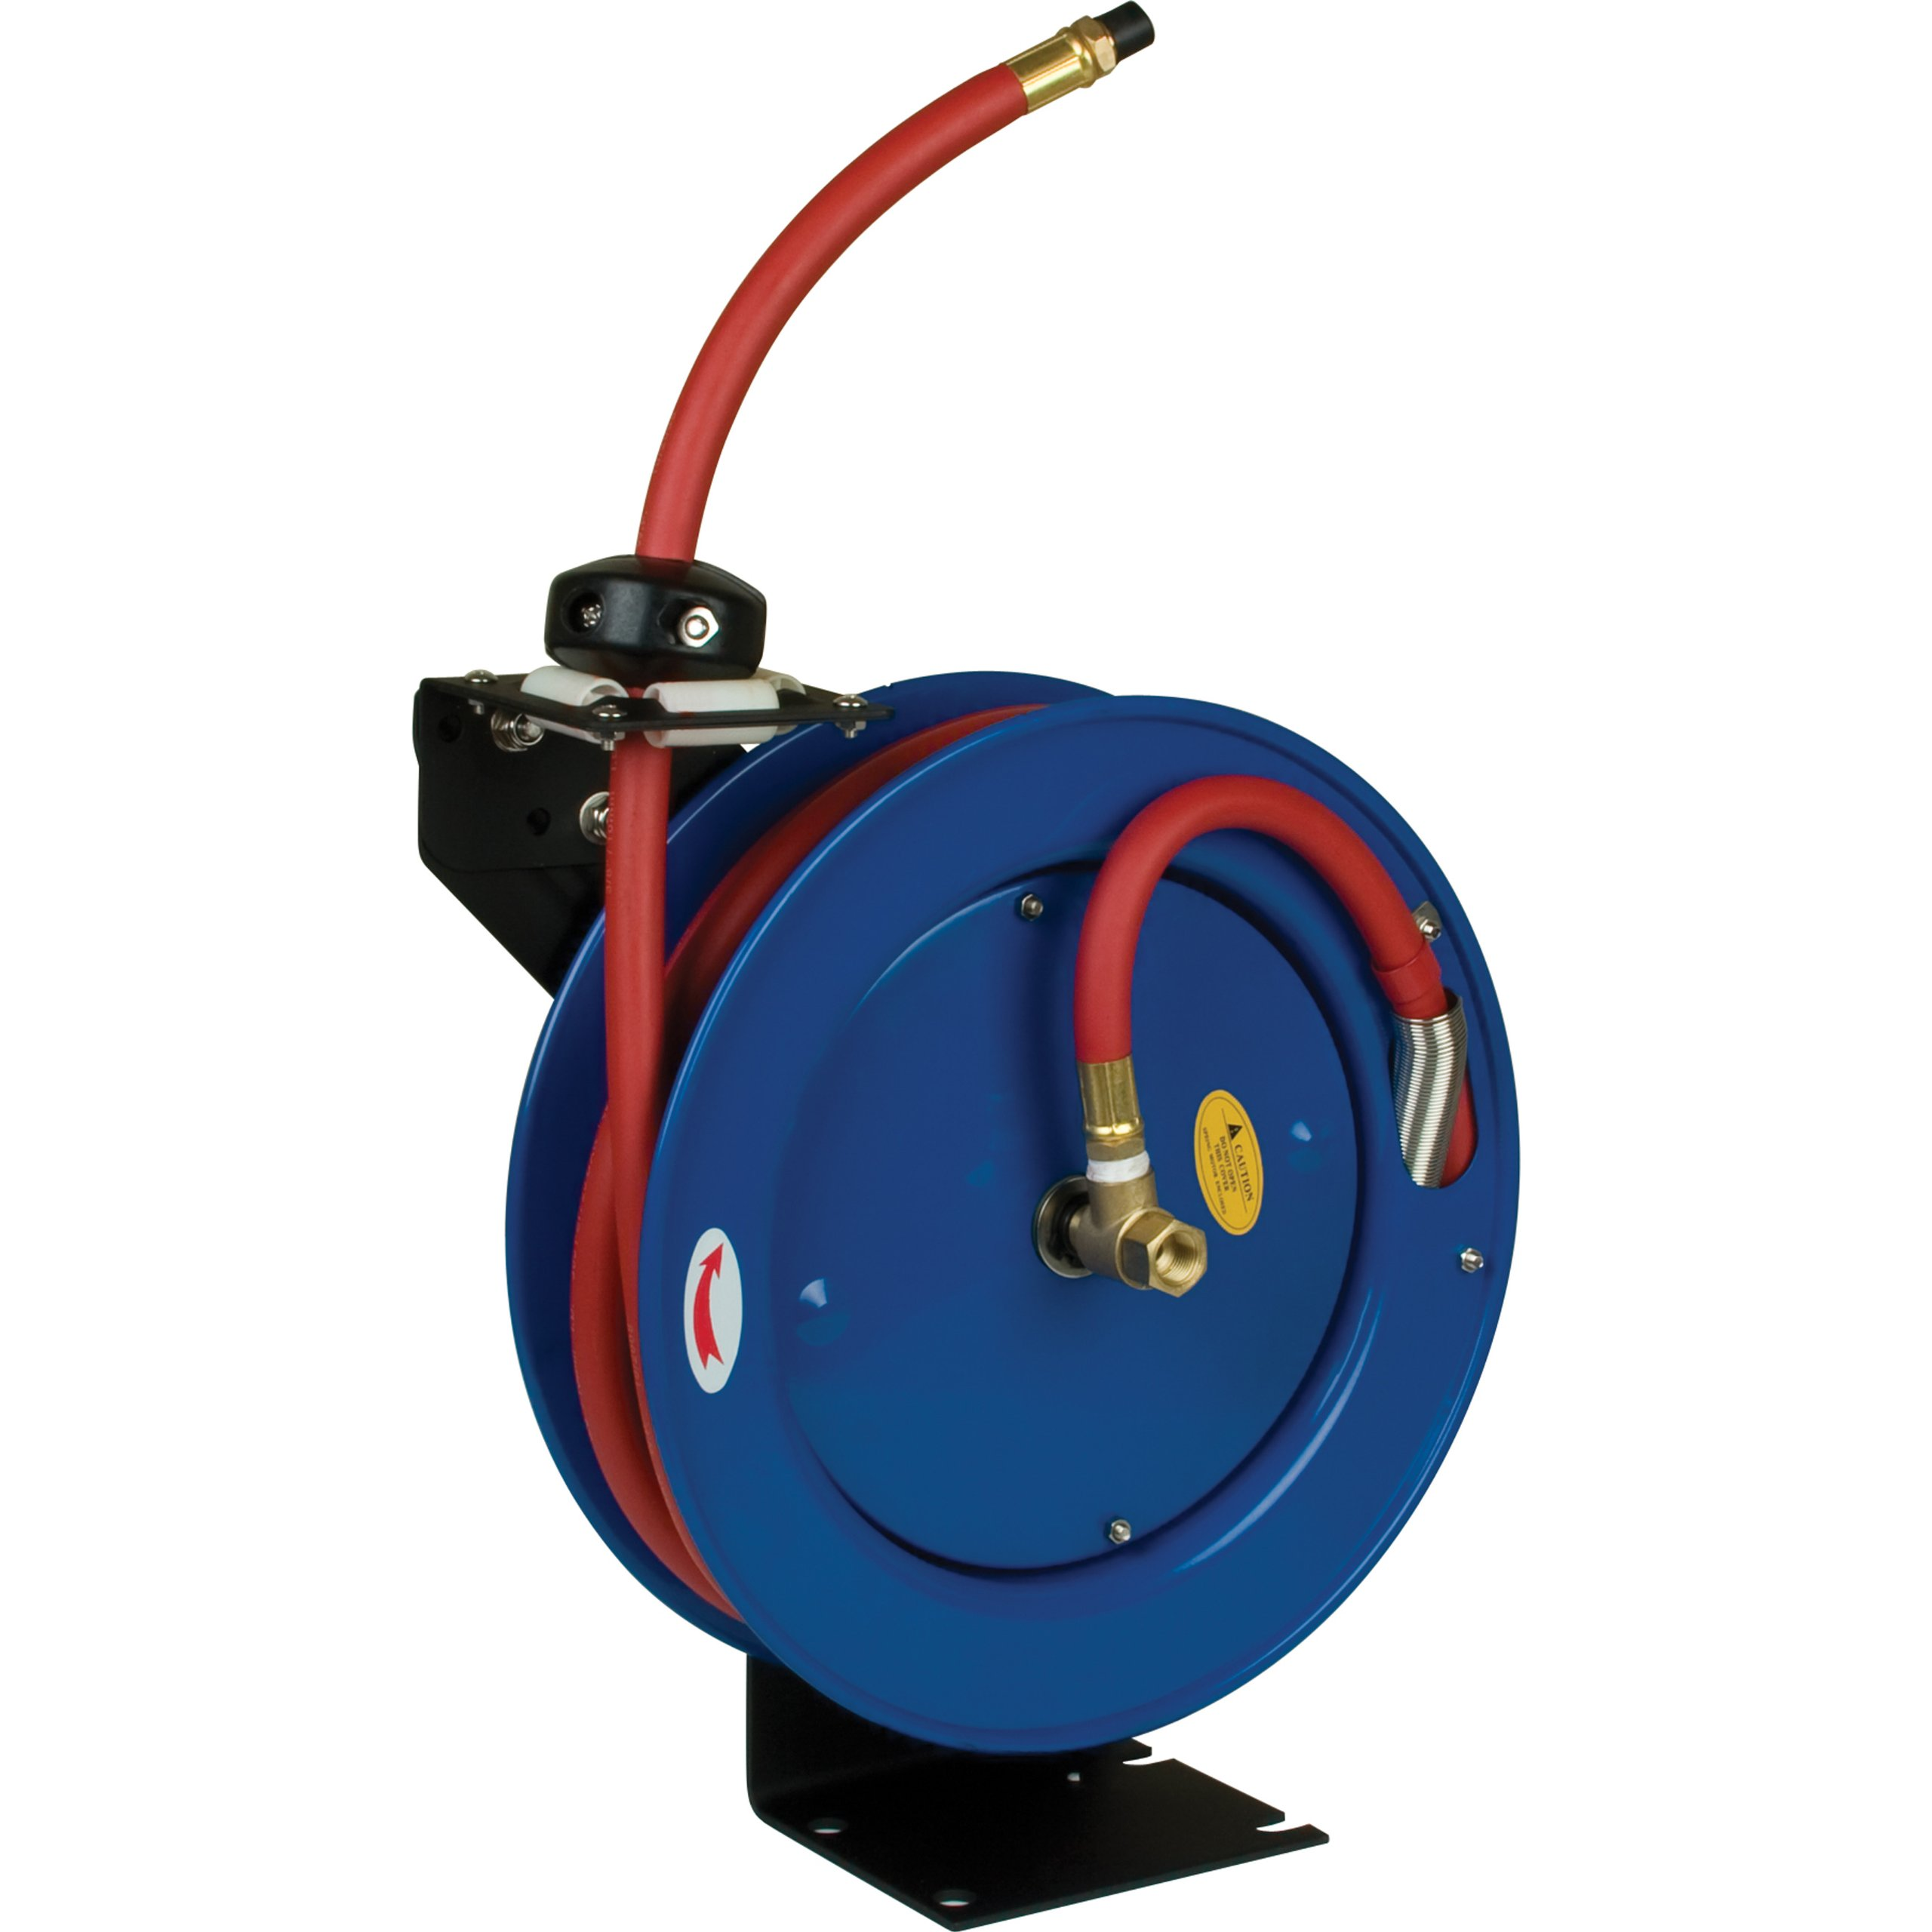 Performance Tool M608 Auto Retractable Hose Reel with 25-Foot Hose